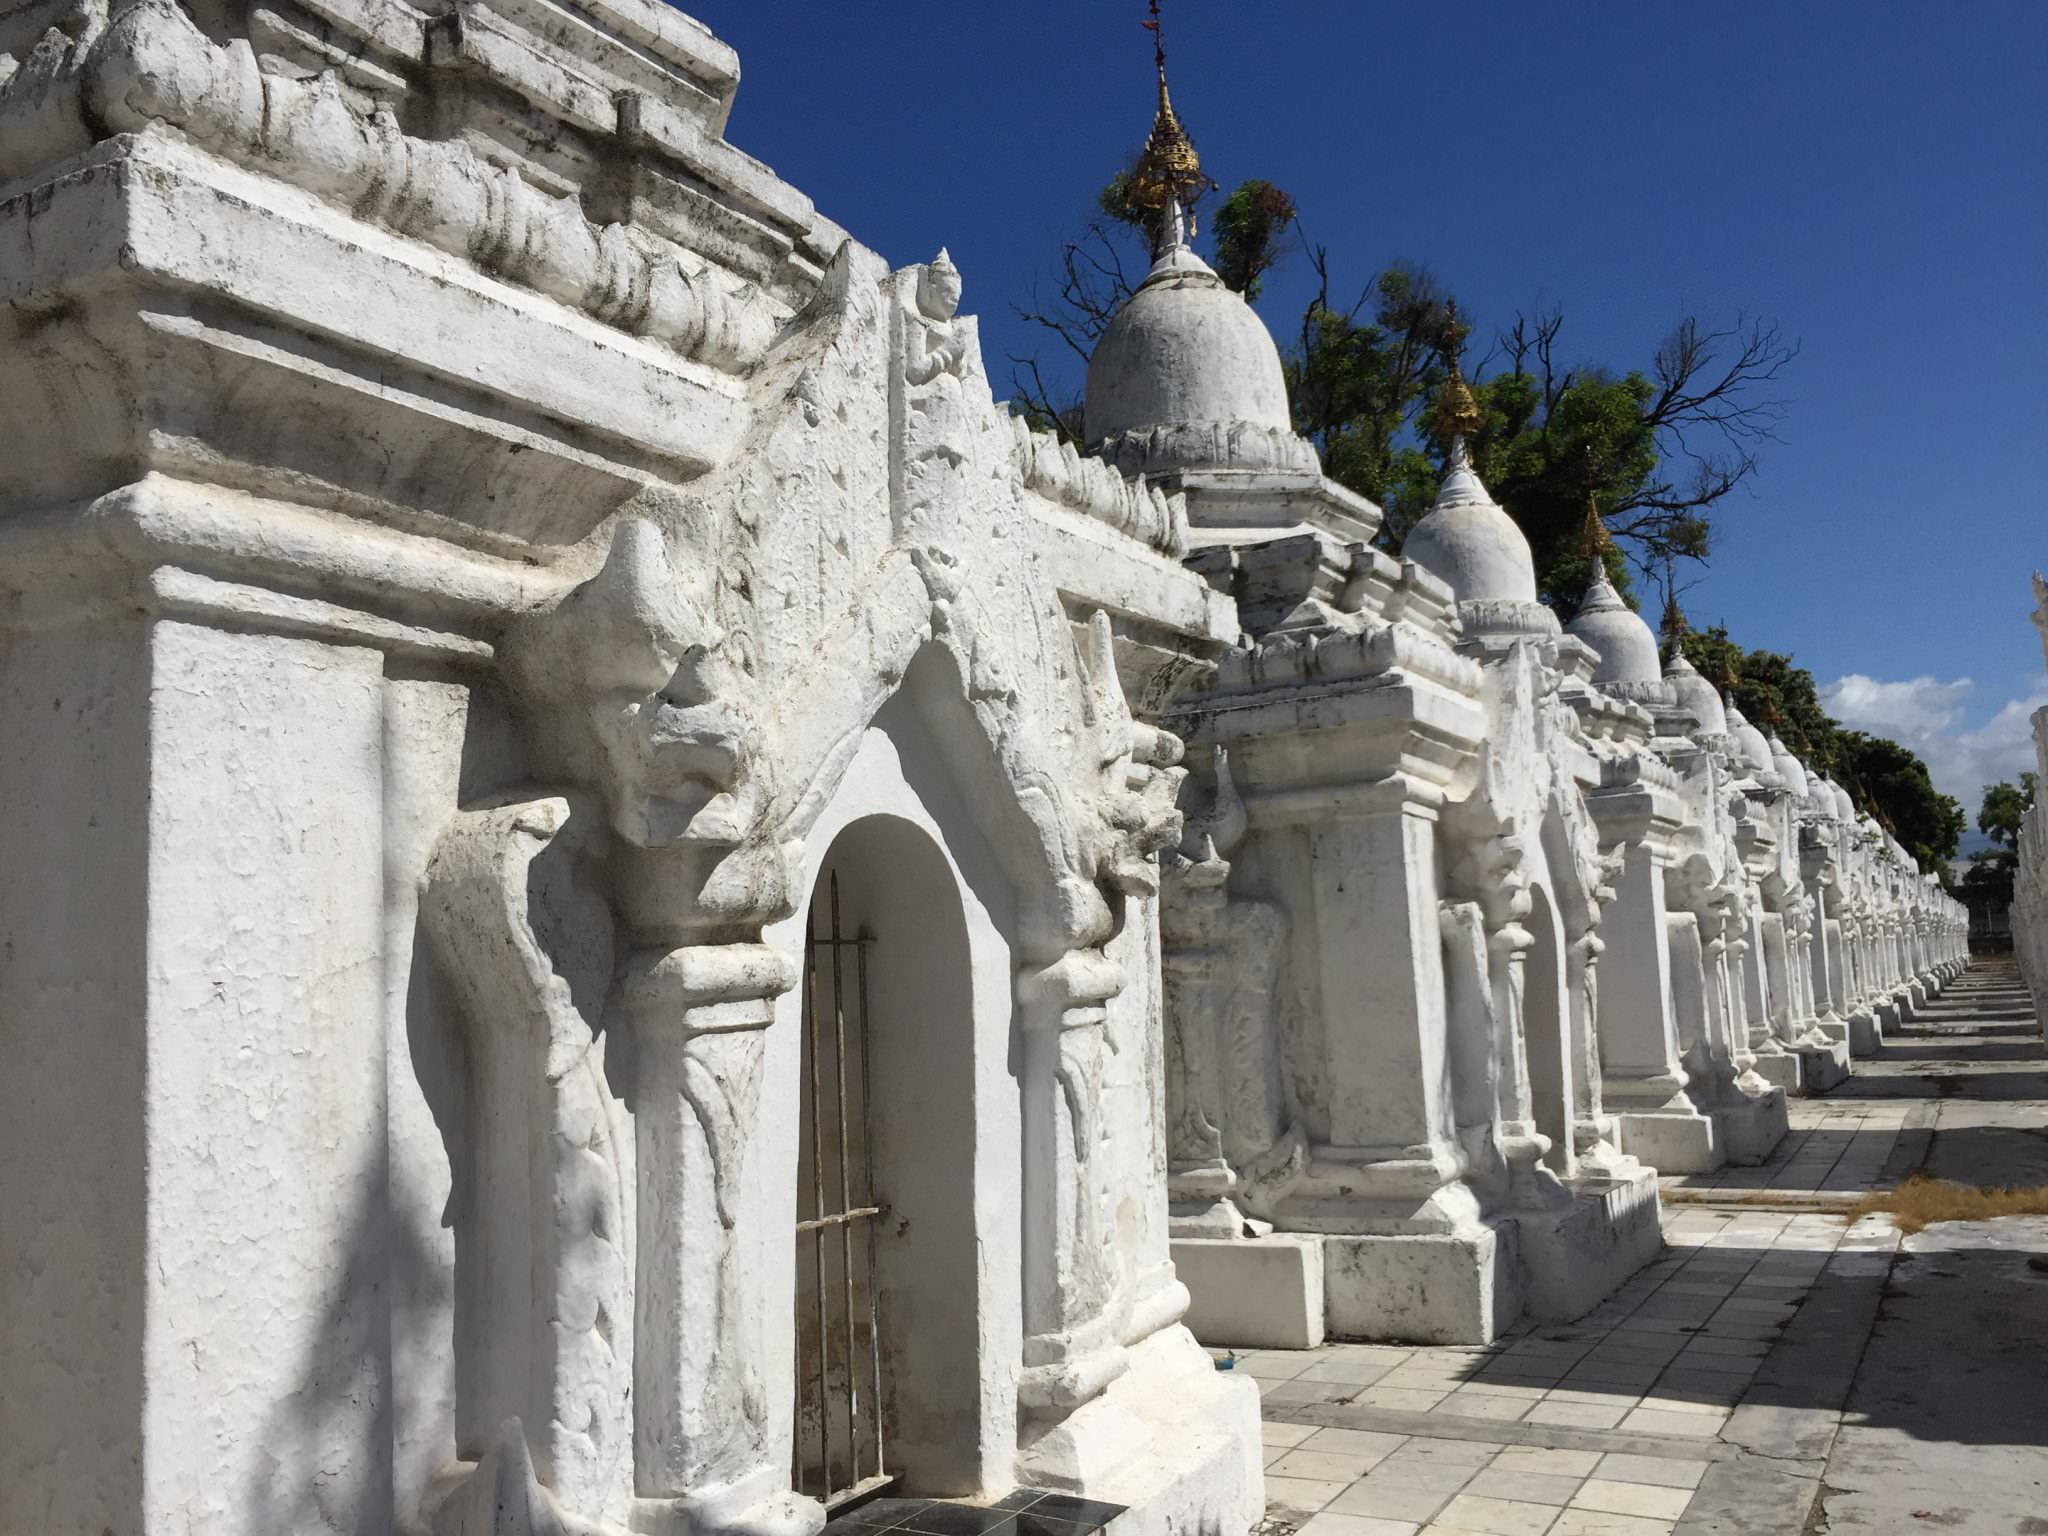 Row after row after row of stupas housing individual book pages at the Kuthodaw Pagoda complex. © 2015 Gail Jessen